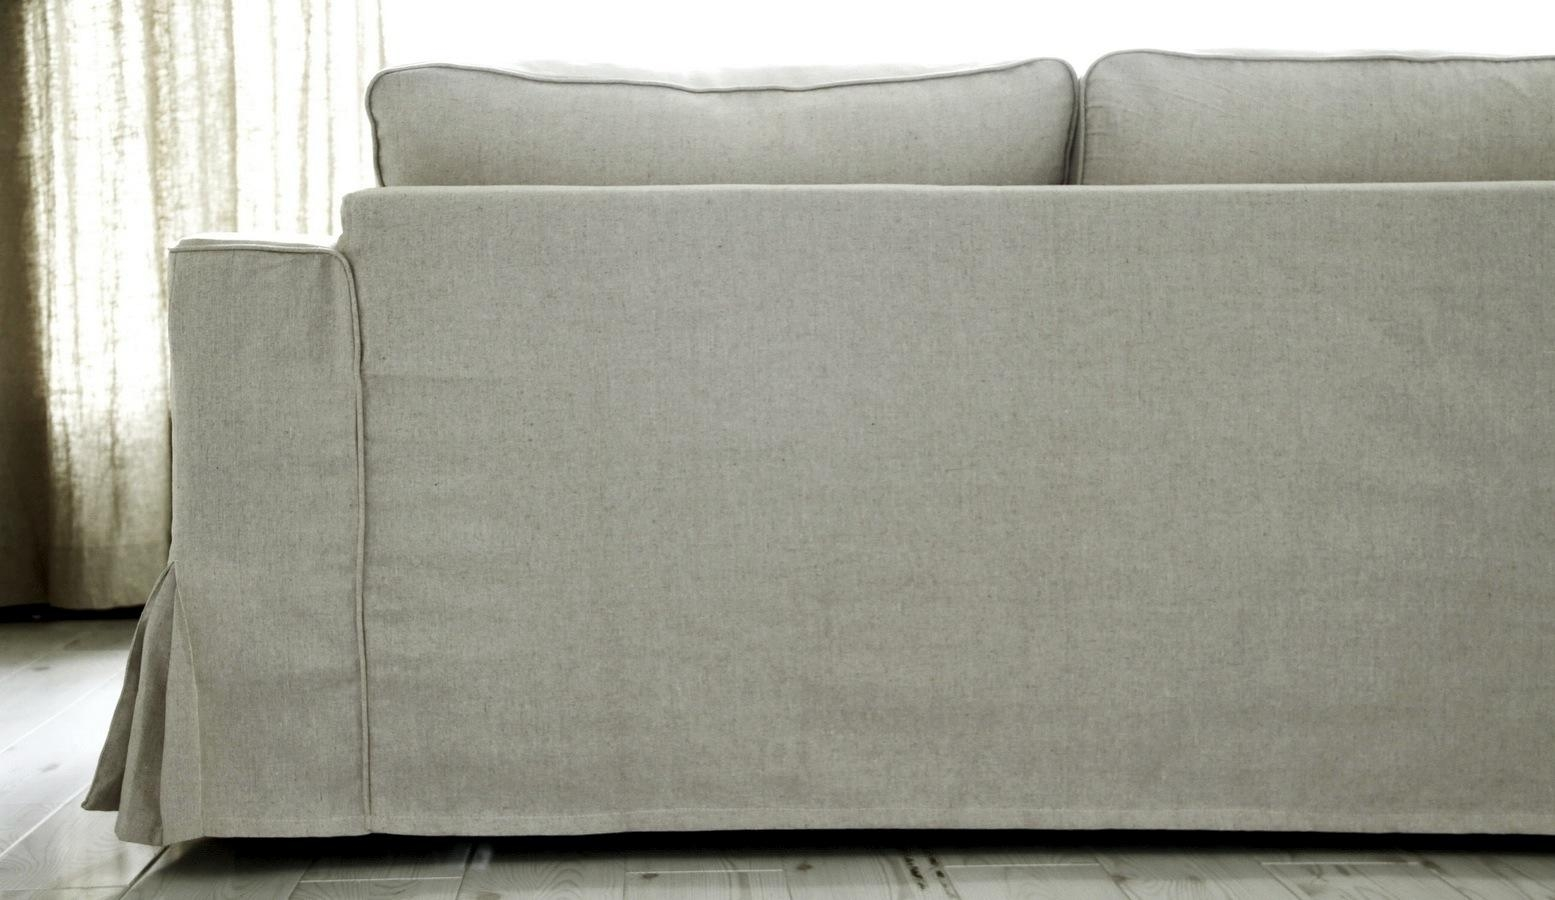 Wonderful Couch Covers Ikea Ektorp D For Design Decorating With Regard To Sofas With Removable Covers (Image 20 of 20)